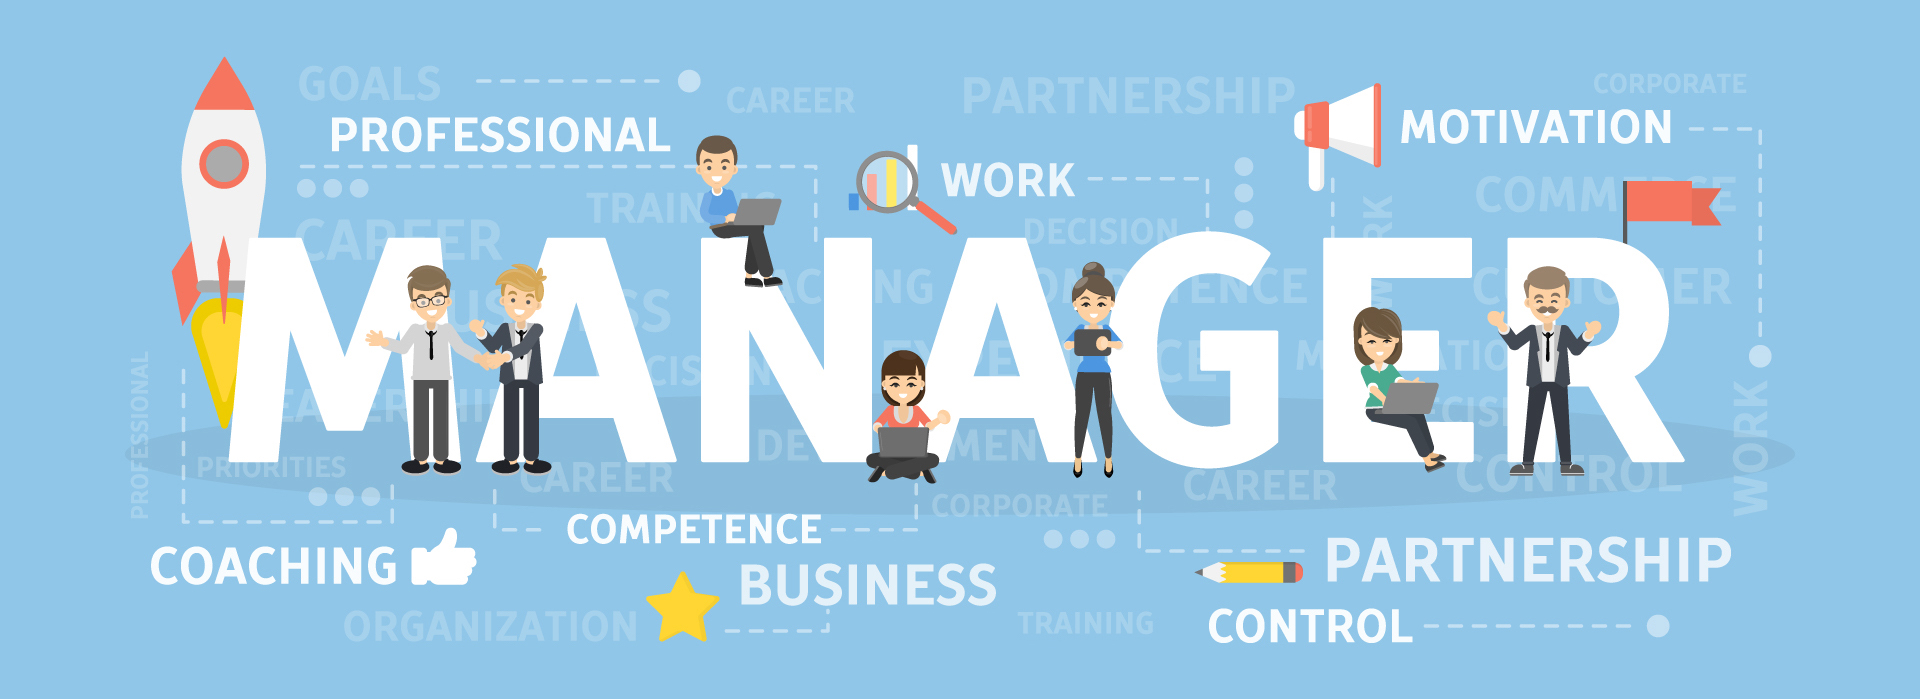 Three Steps to Manager-led Employee Engagement – The Social Workplace